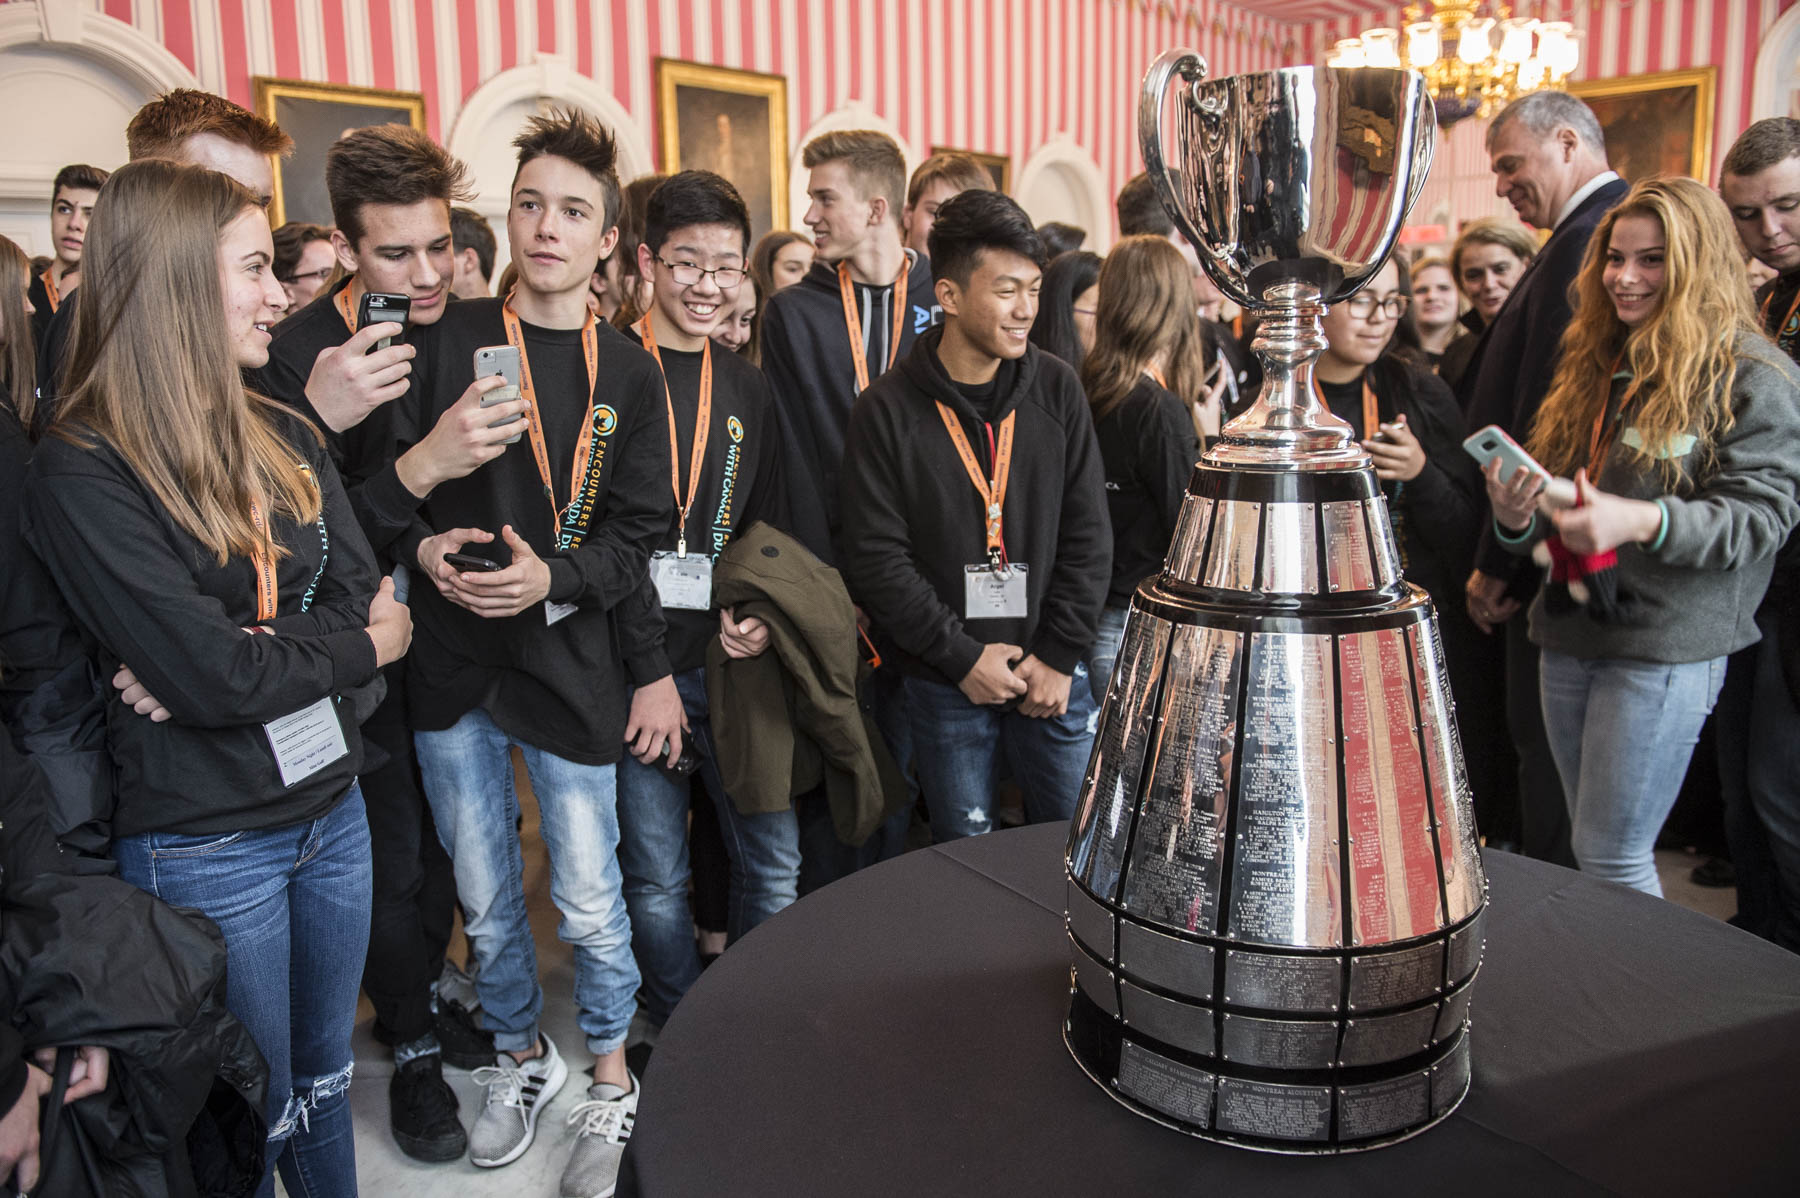 Seeing the Grey Cup at Rideau Hall was an opportunity not to be missed by sports enthusiasts, such as this youth group from Encounters with Canada.